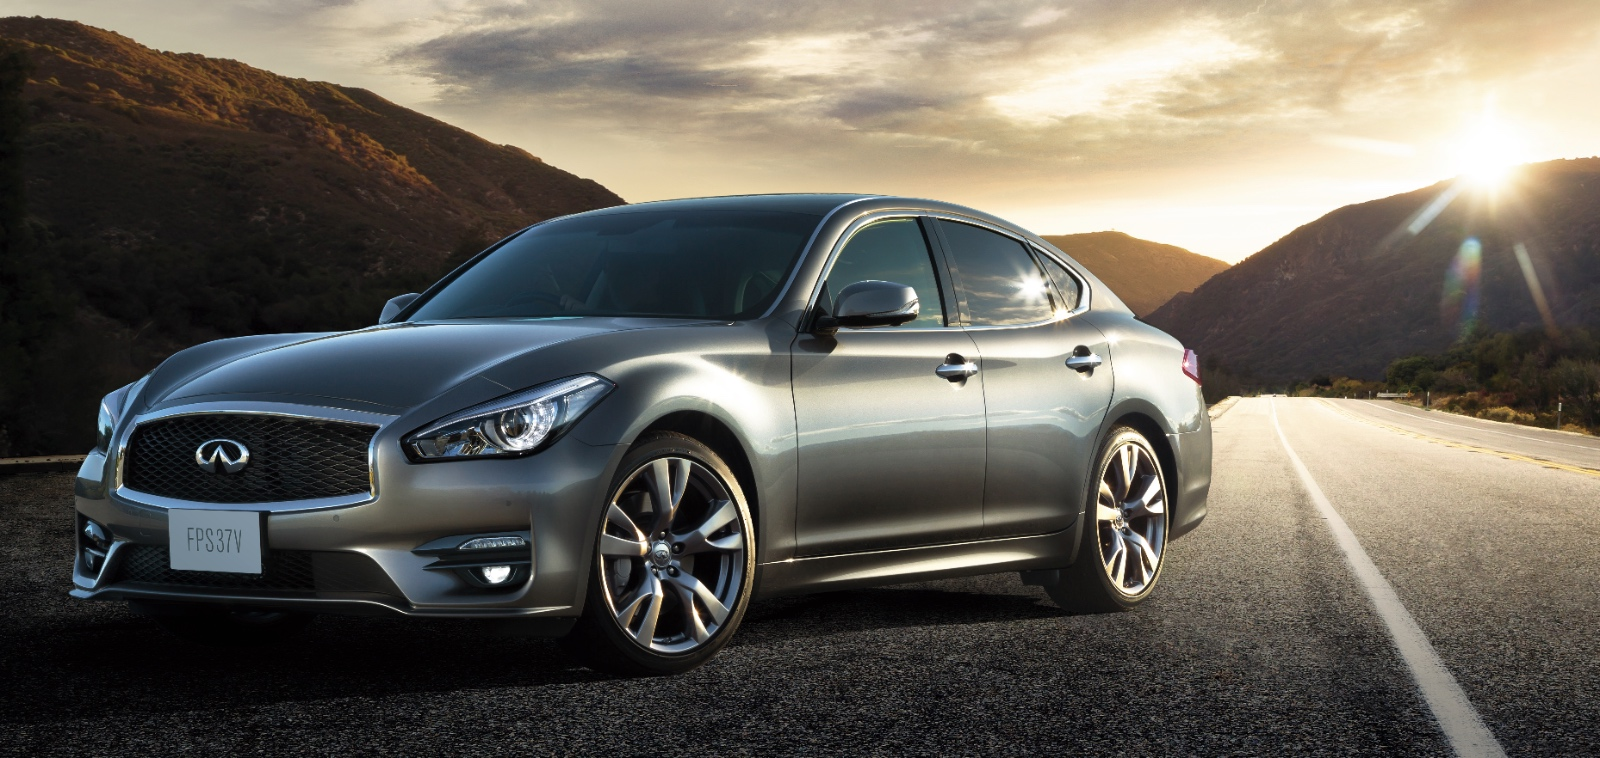 Nissan Officially Unveils The 2015 Fuga Sedan In Japan